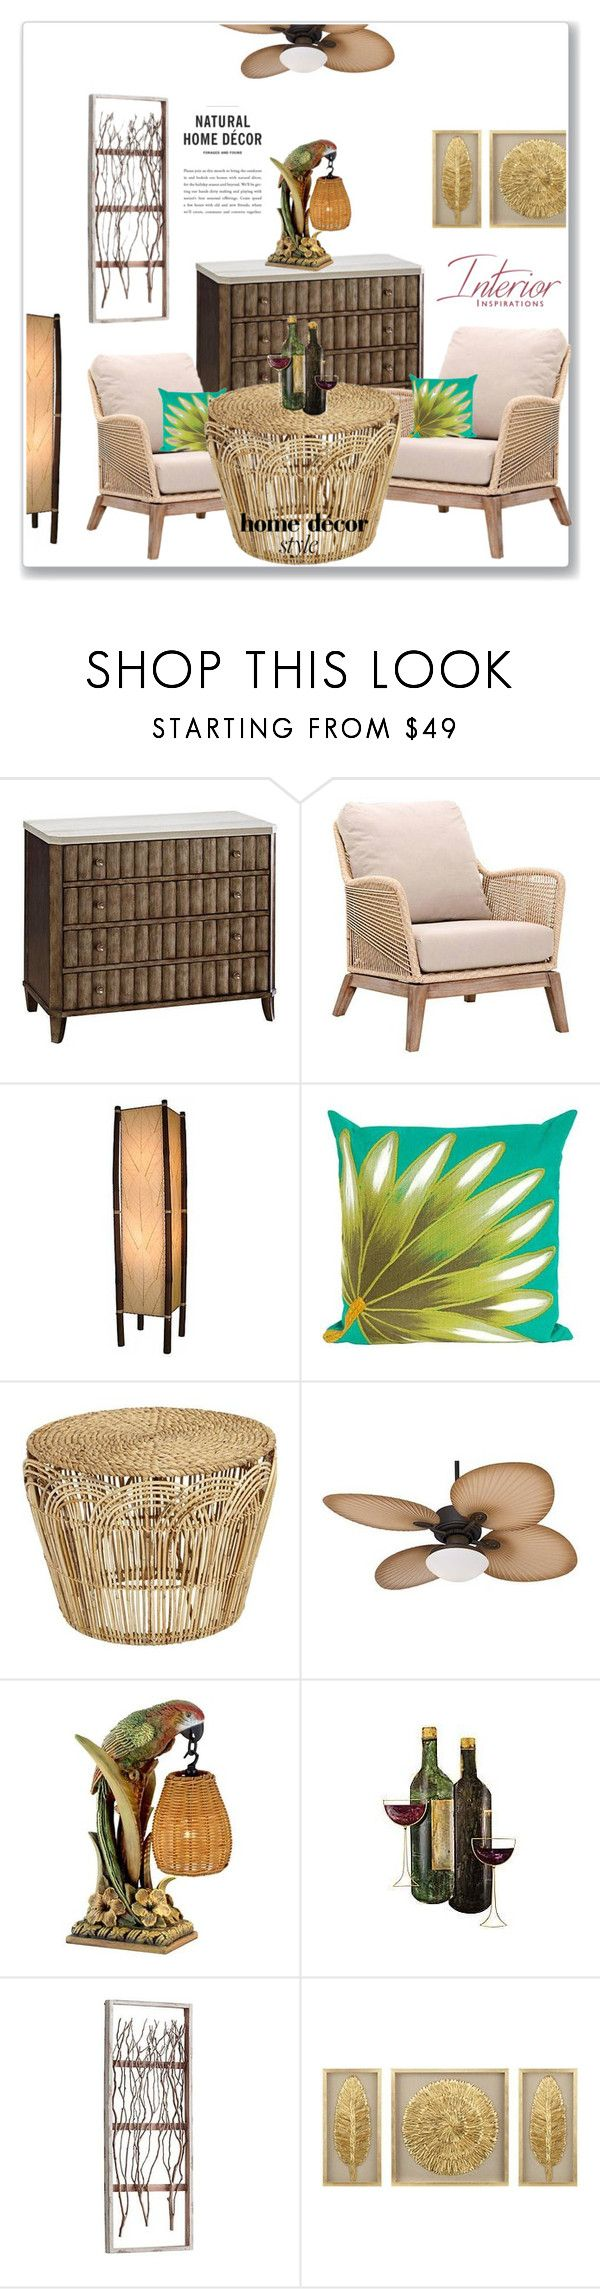 """""""Tropical Style"""" by nena137 ❤ liked on Polyvore featuring interior, interiors, interior design, home, home decor, interior decorating, Casa Vieja and Kathy Ireland"""